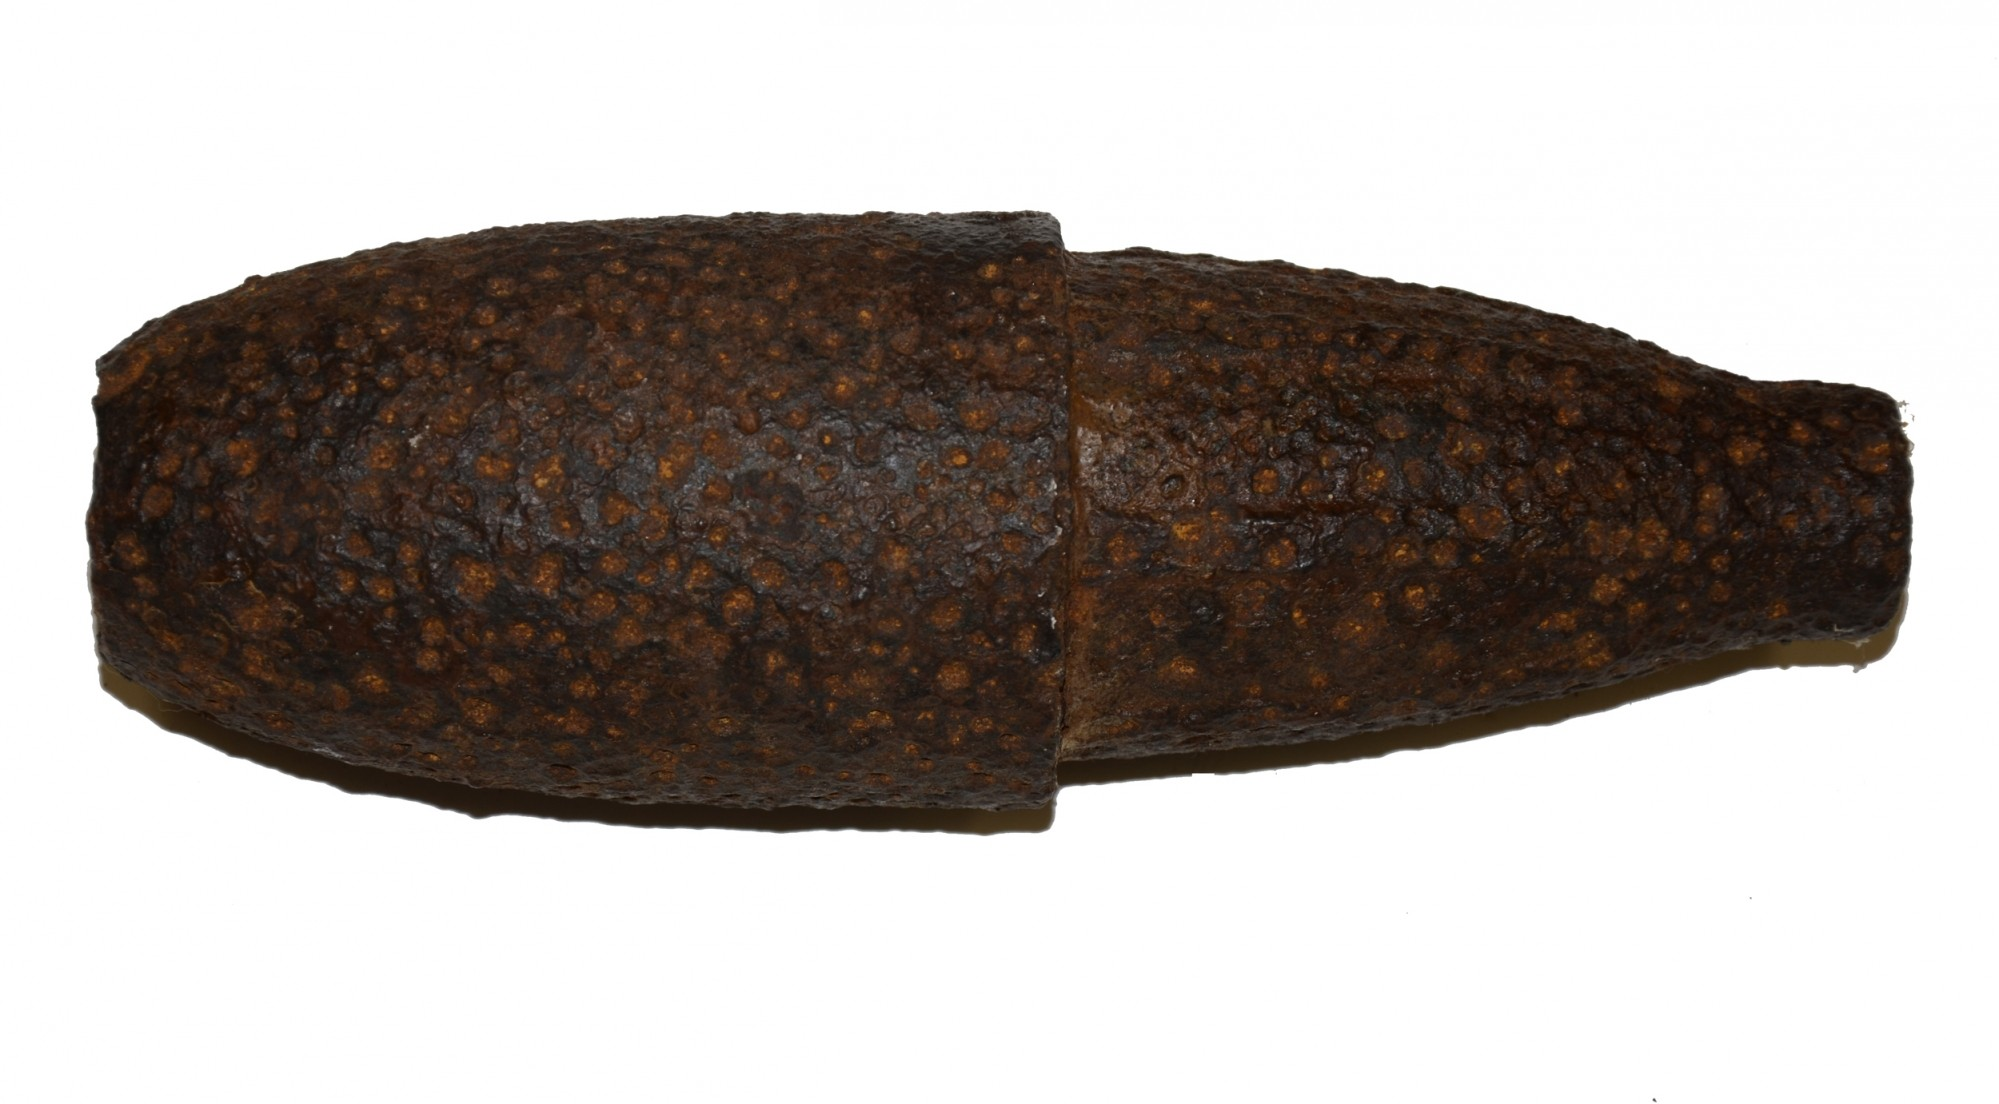 US 3 INCH SCHENKL SHELL, RECOVERED FROM ANTIETAM